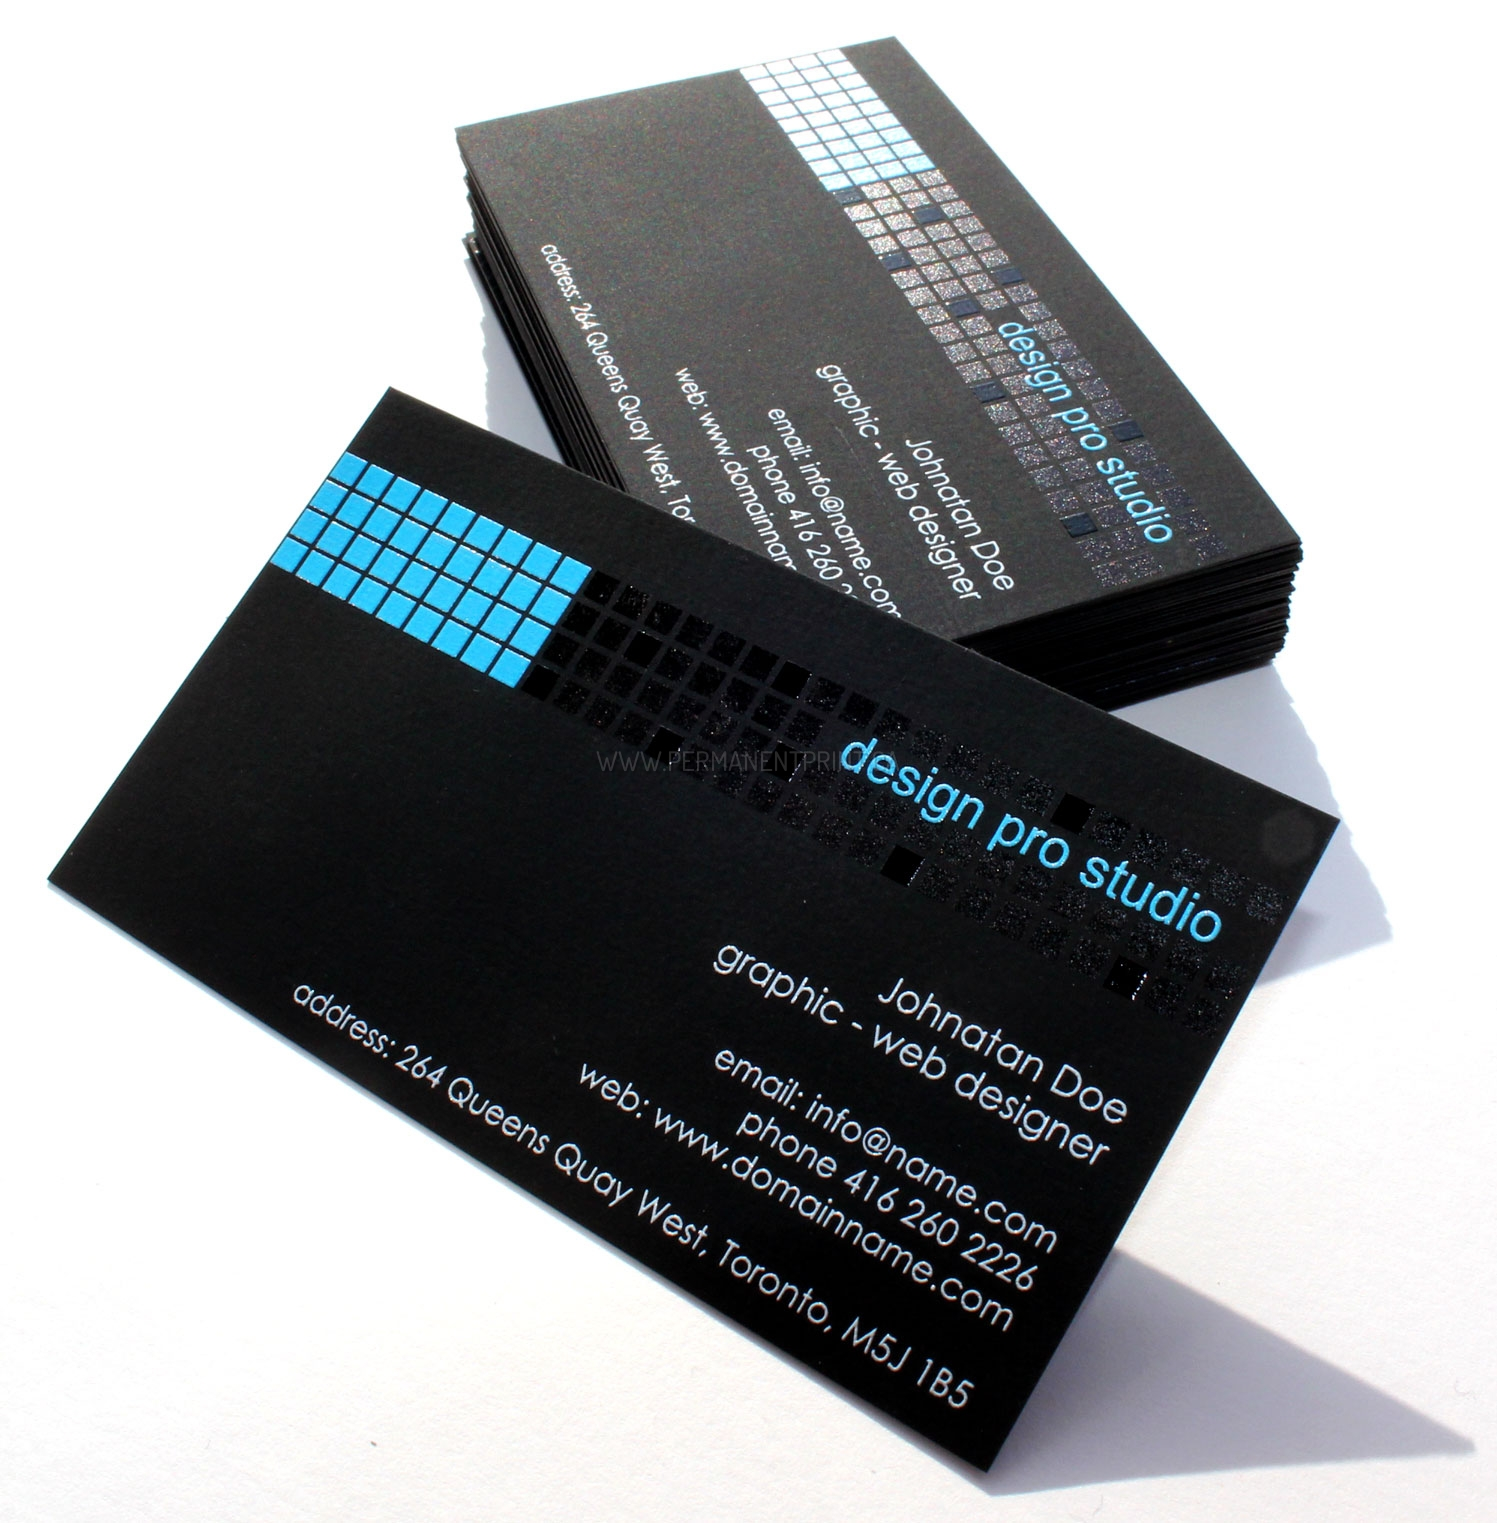 Custom Card Template buisness cards : Unique Business Cards Archives - PERMANENT PRINT